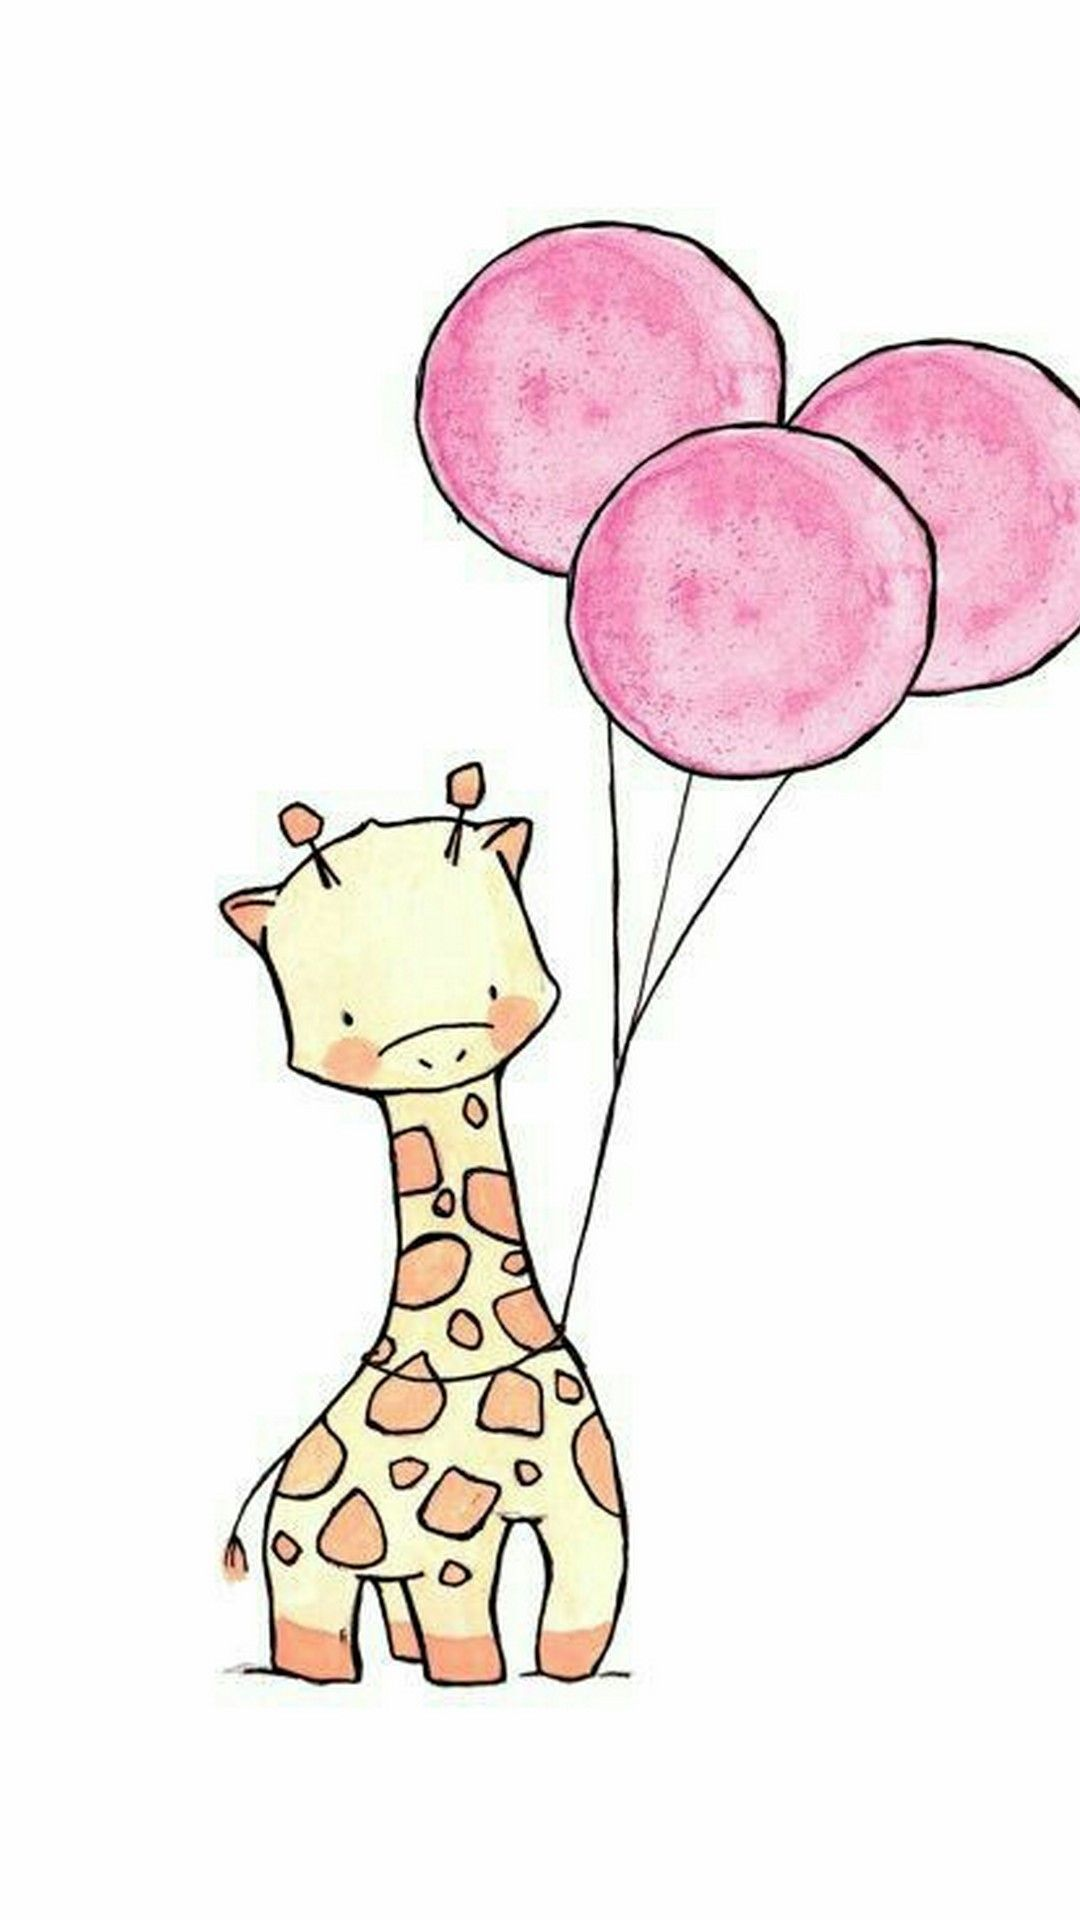 Giraffe Wallpaper Cartoon iPhone - Best iPhone Wallpaper